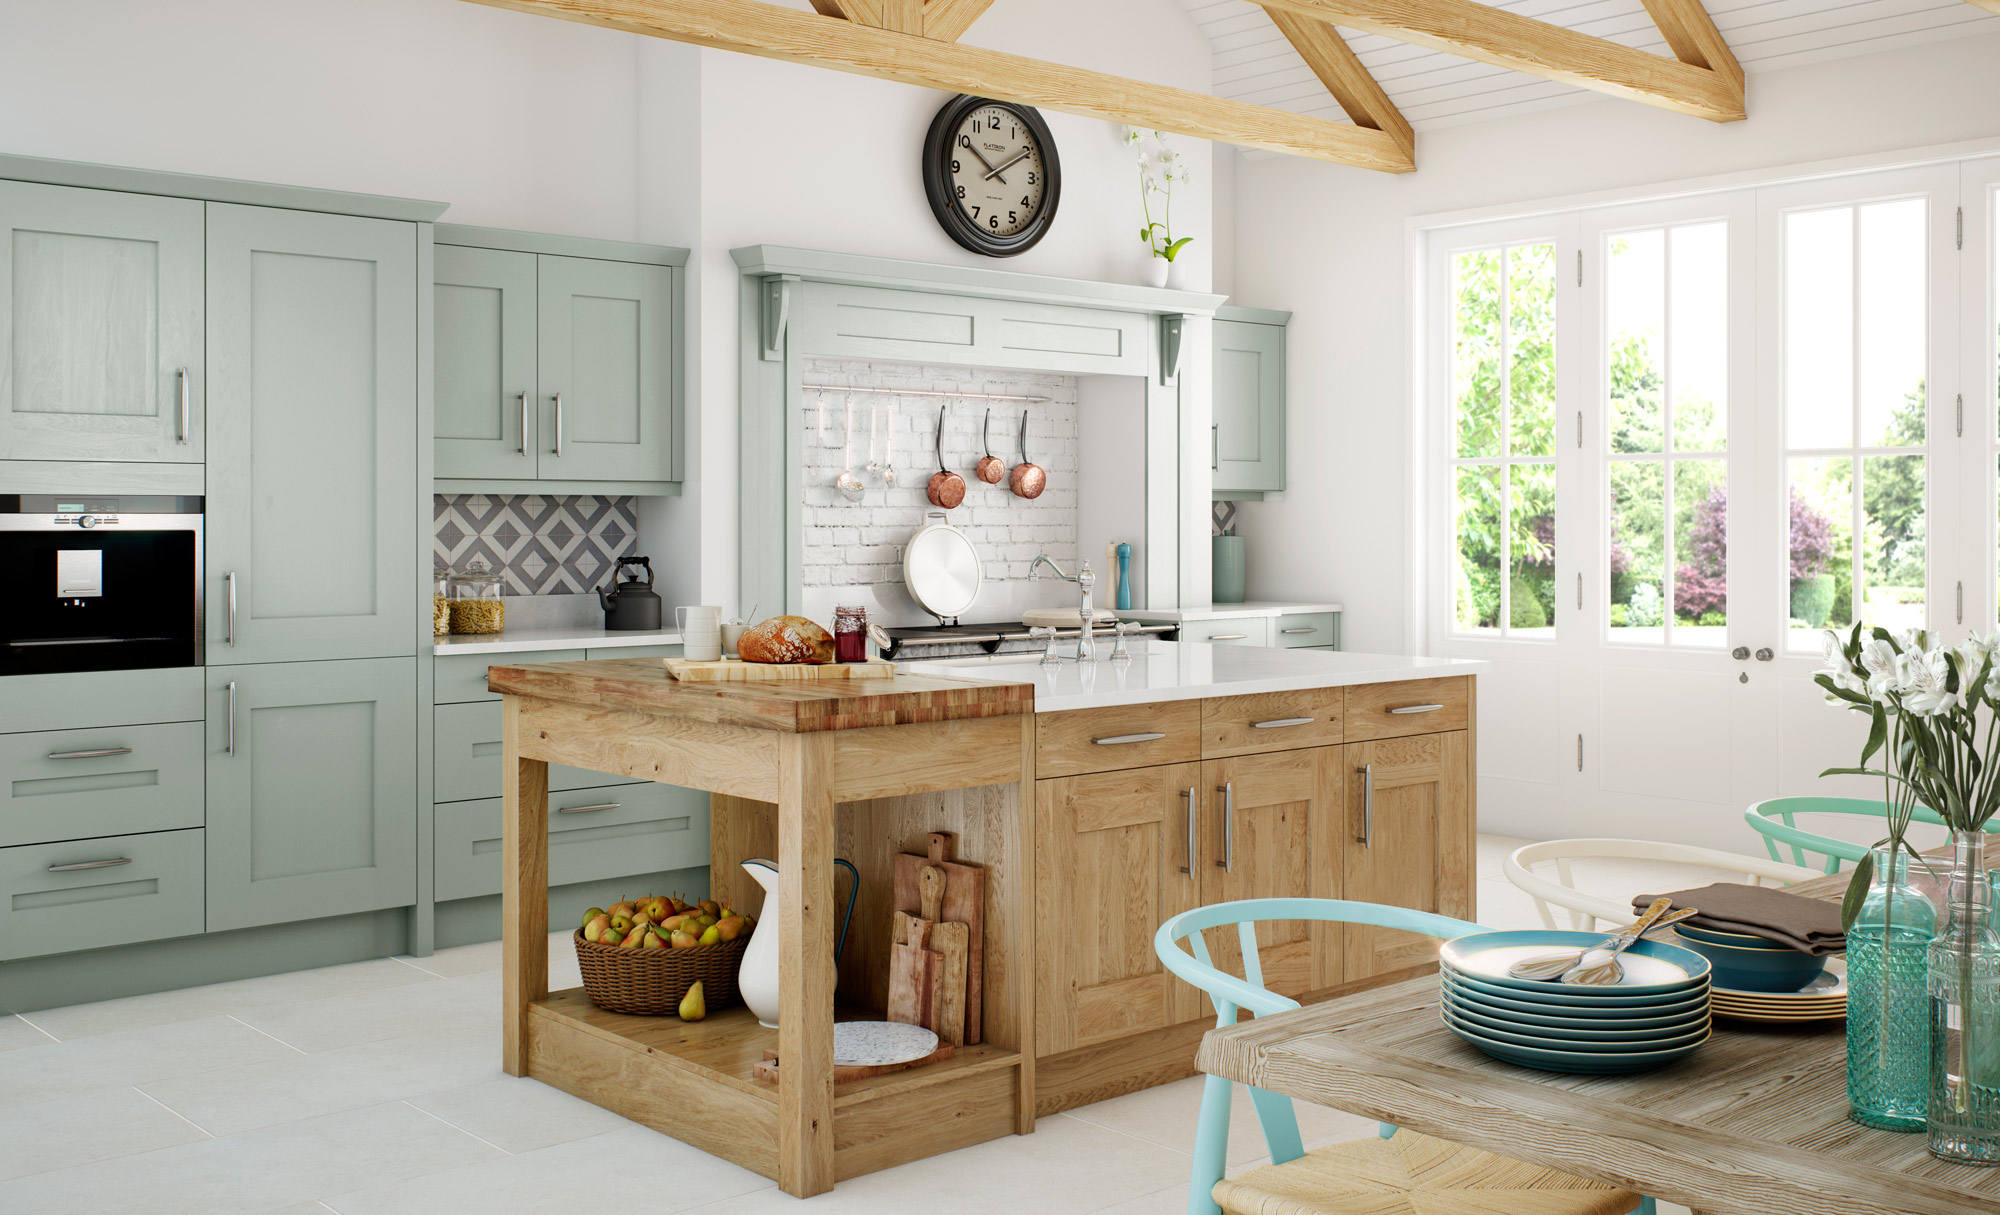 http://www.ianwoodbespokeinteriors.co.uk/wp-content/uploads/2017/01/traditional-country-classic-clonmel-knotty-oak-painted-light-blue-kitchen-hero.jpg